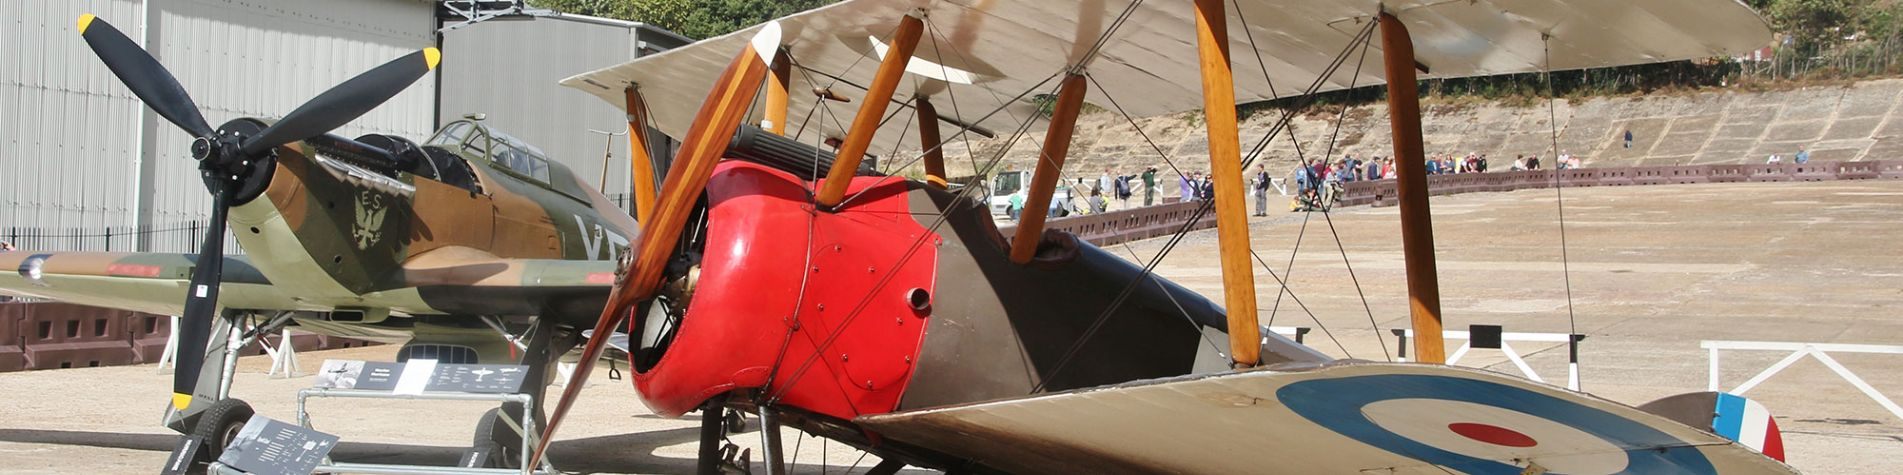 sopwith-and-hurricane-outside-header.jpg